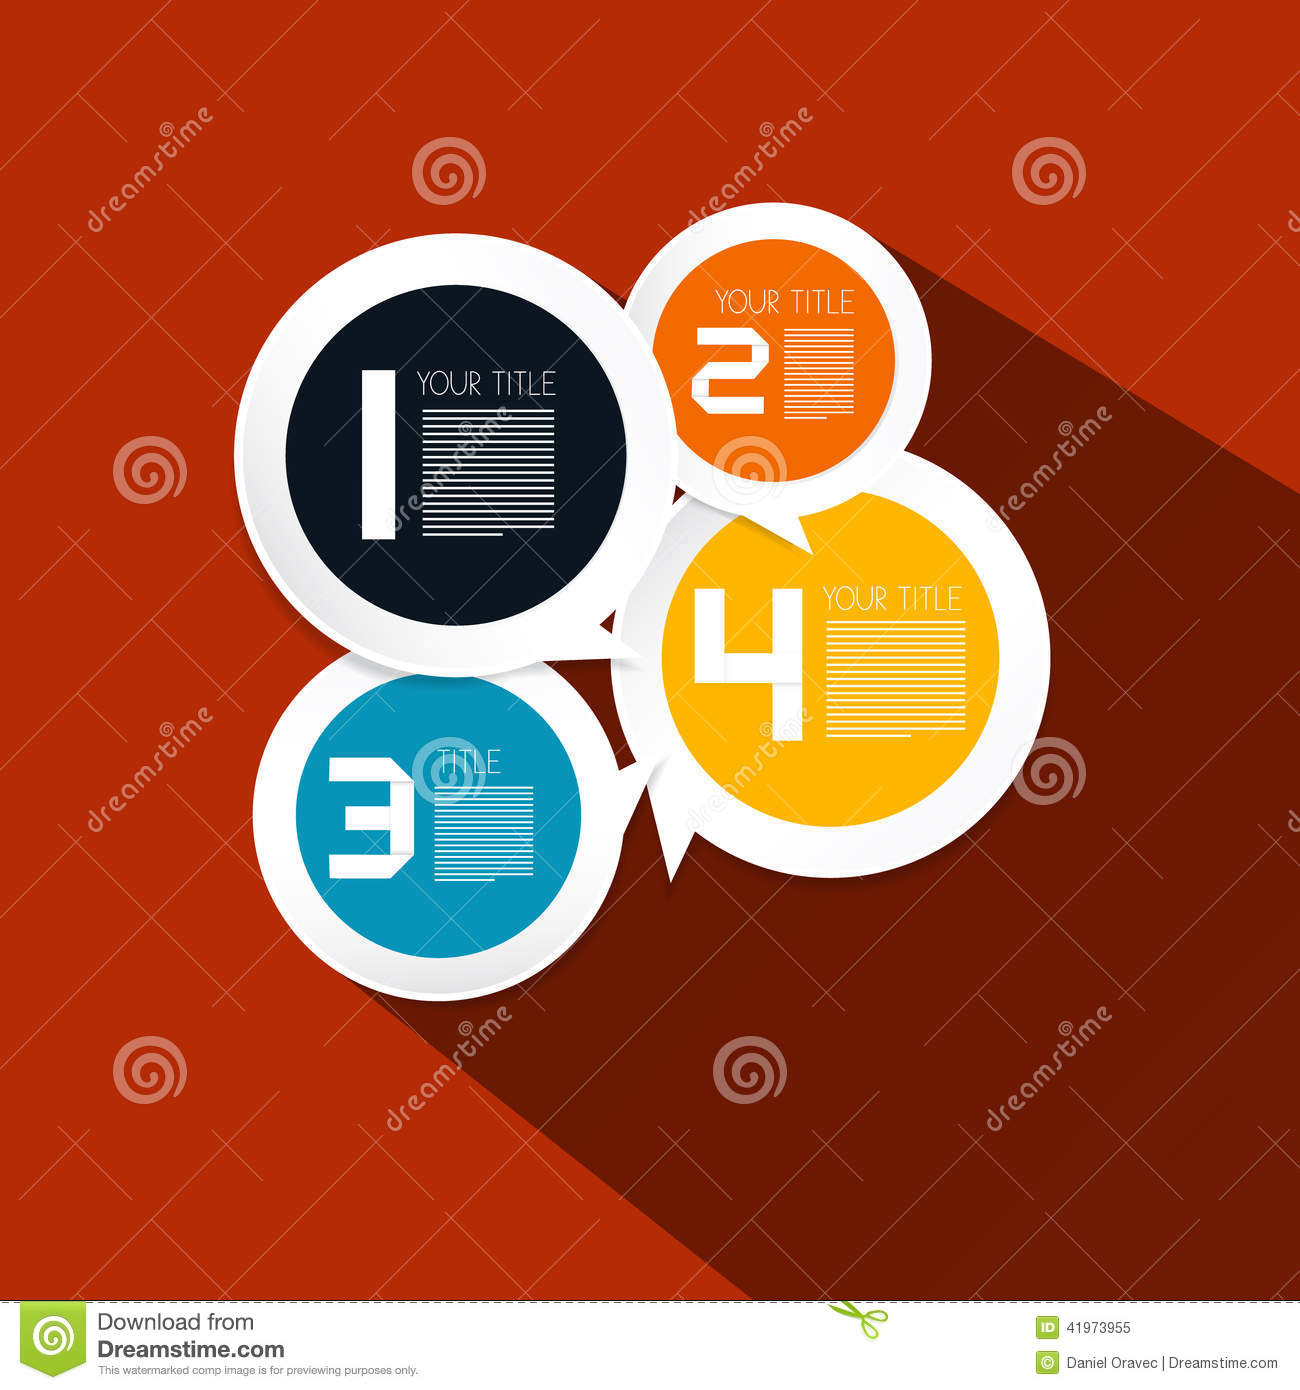 Four Steps Paper Vector Circle Infographic Layout